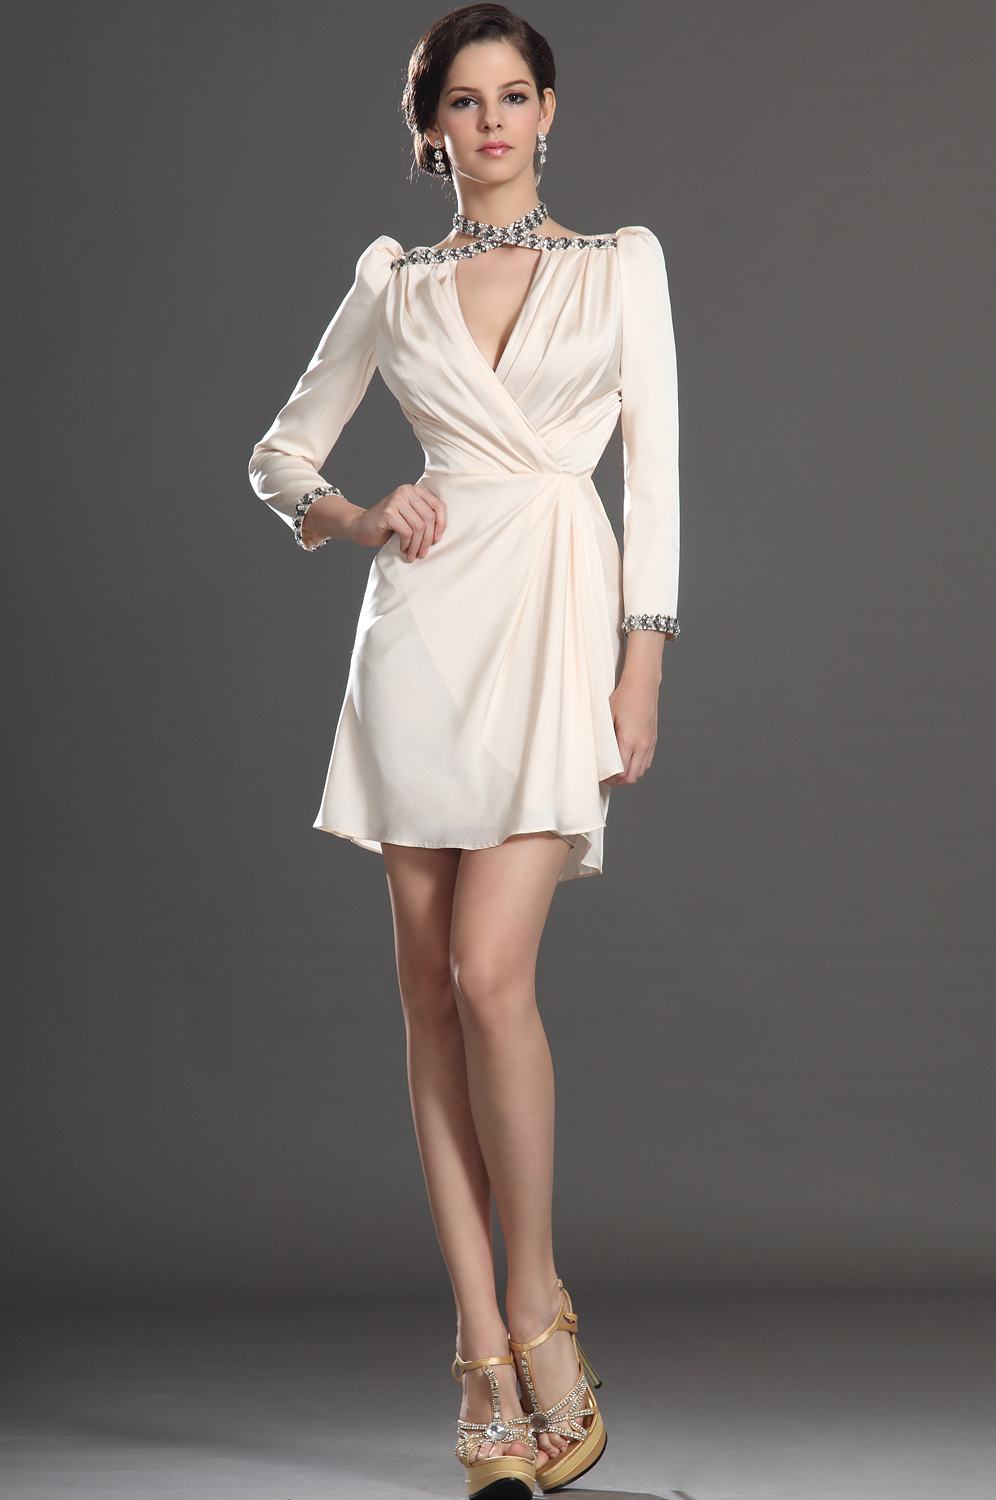 elegant cocktail dresses with sleeves photo - 1